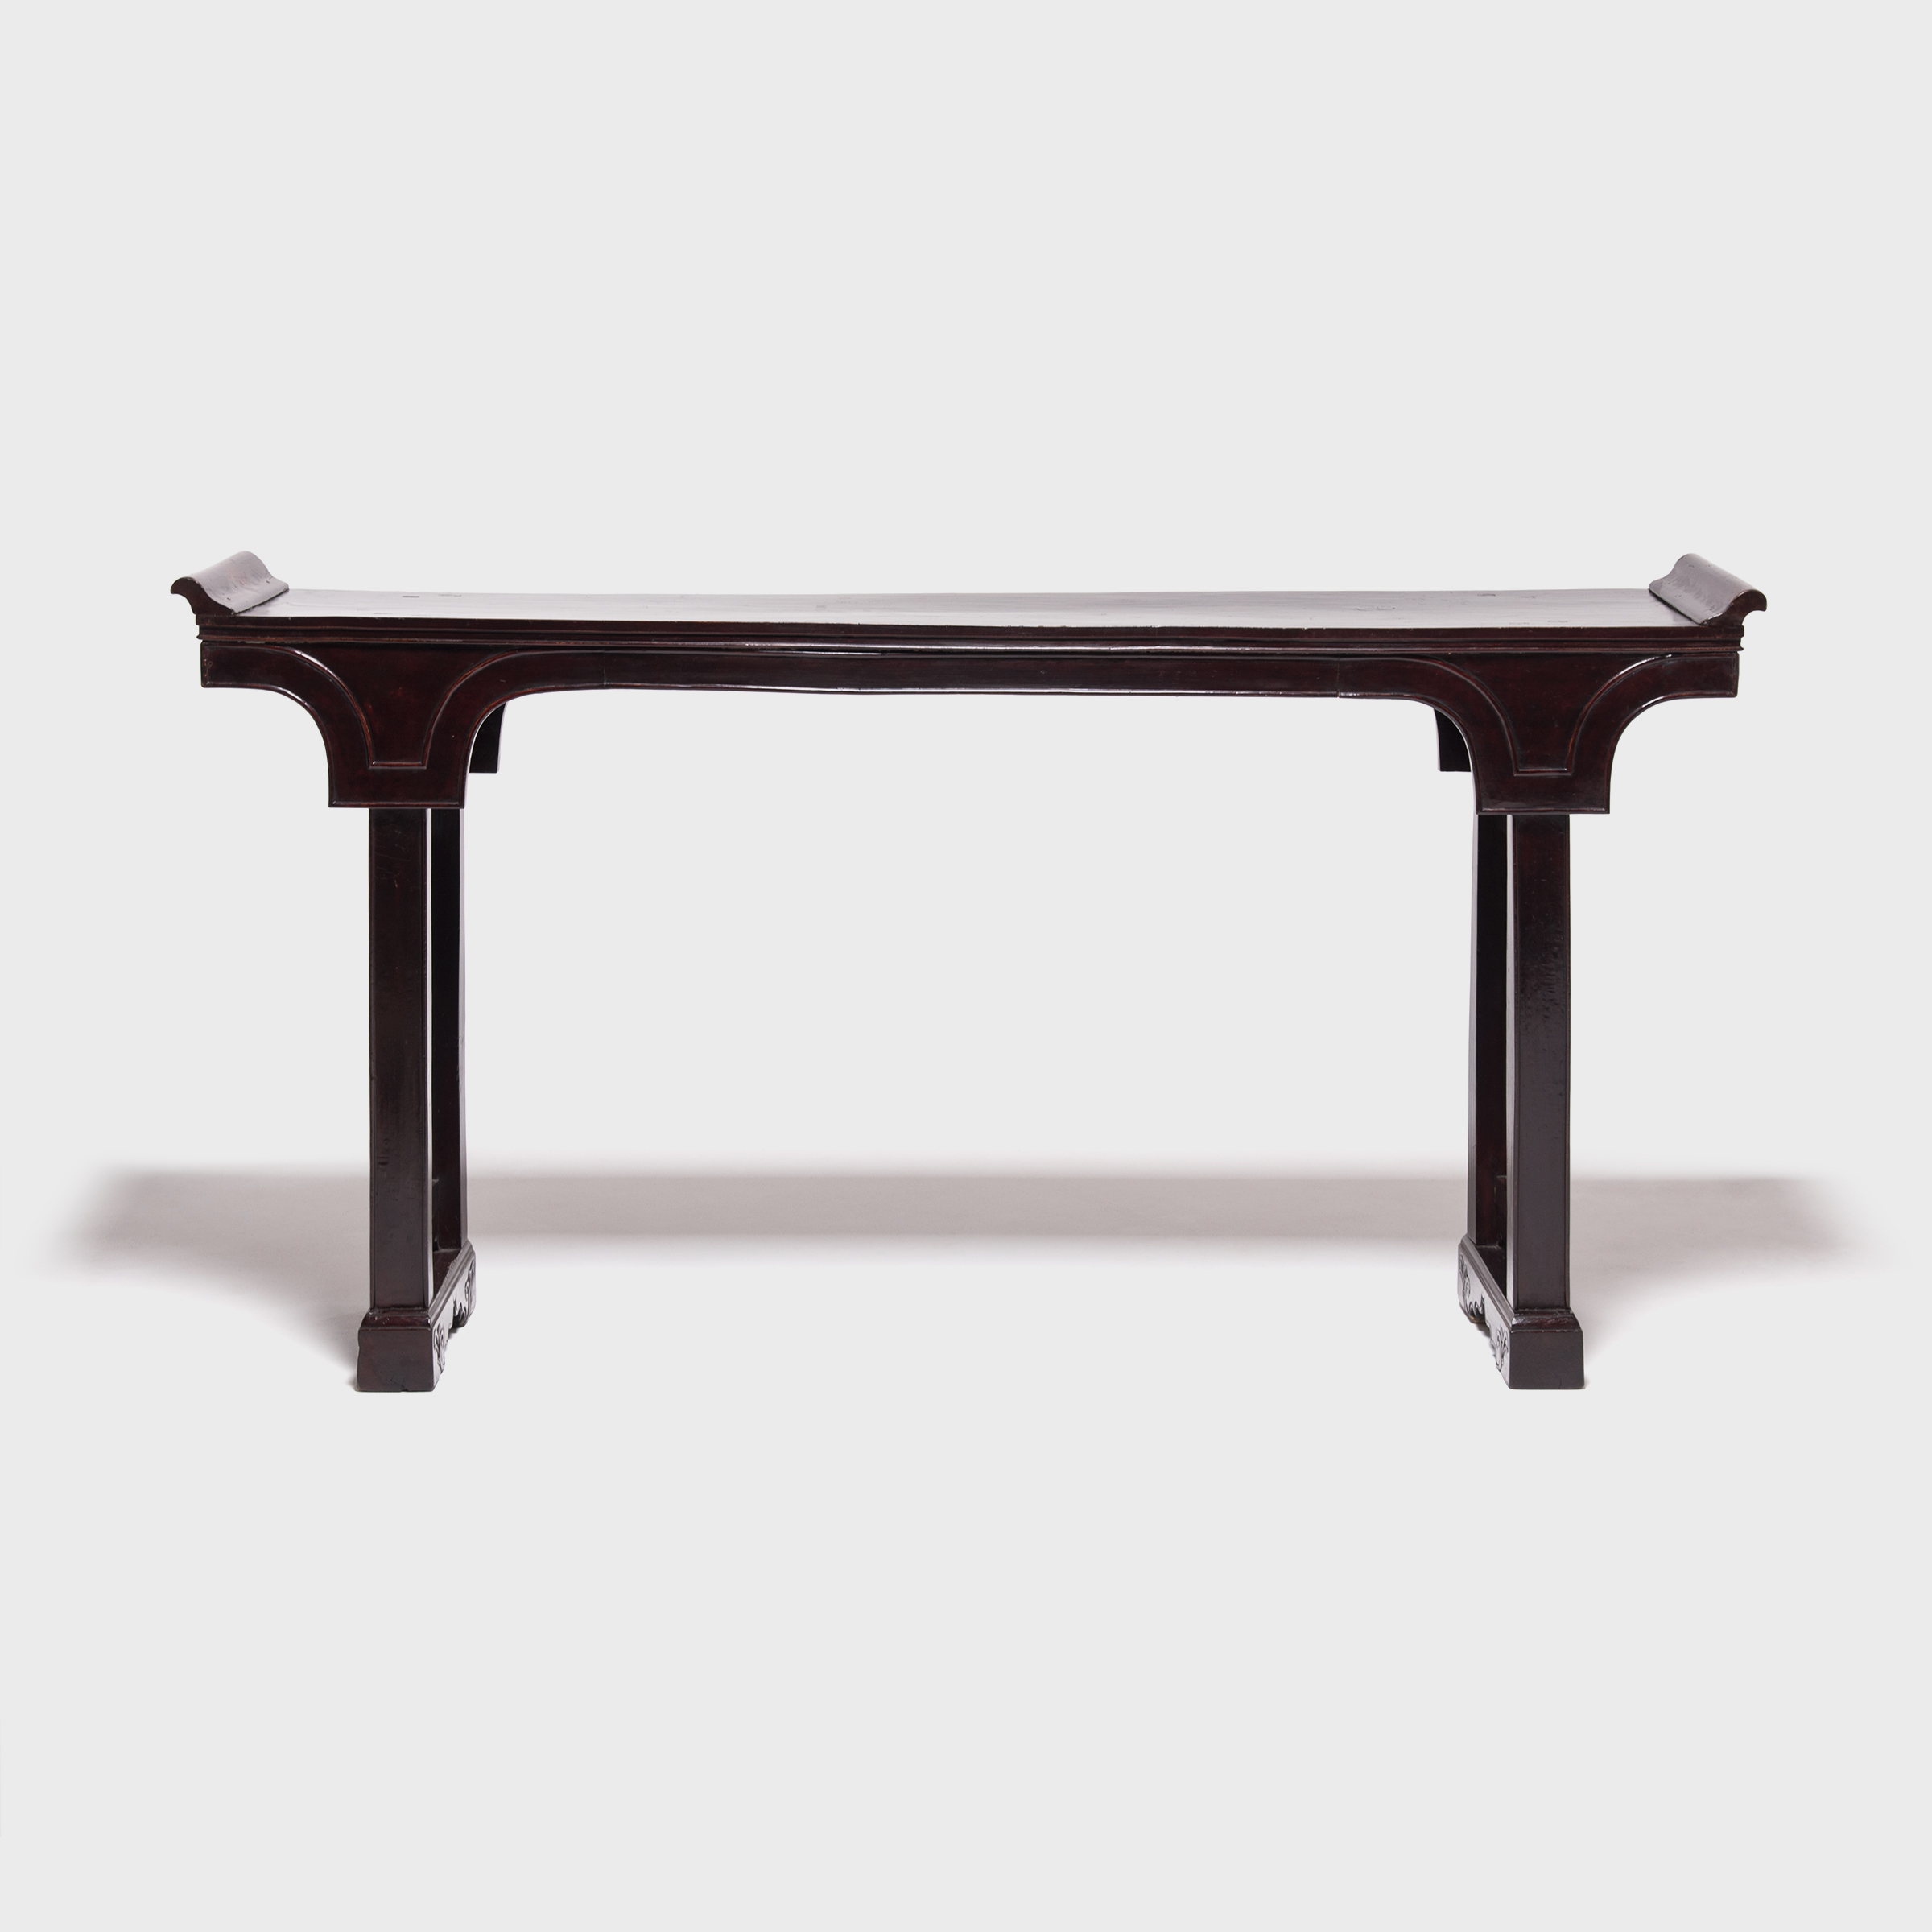 Chinese Tables And Antique Chinese Tables | Pagoda Red For Era Limestone Console Tables (View 4 of 20)